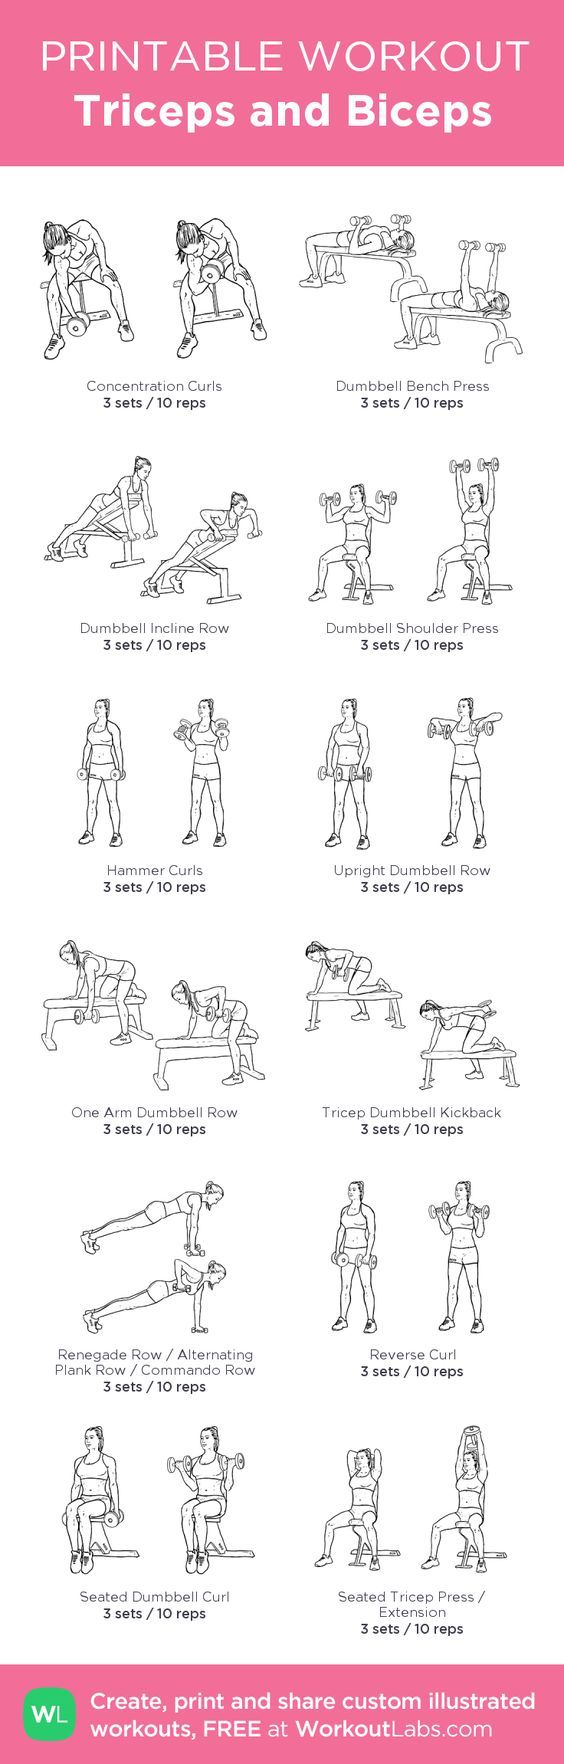 The secret to building sexier biceps for women and men Triceps and Biceps : my custom printable workout by @WorkoutLabs #workoutlabs #customworkout